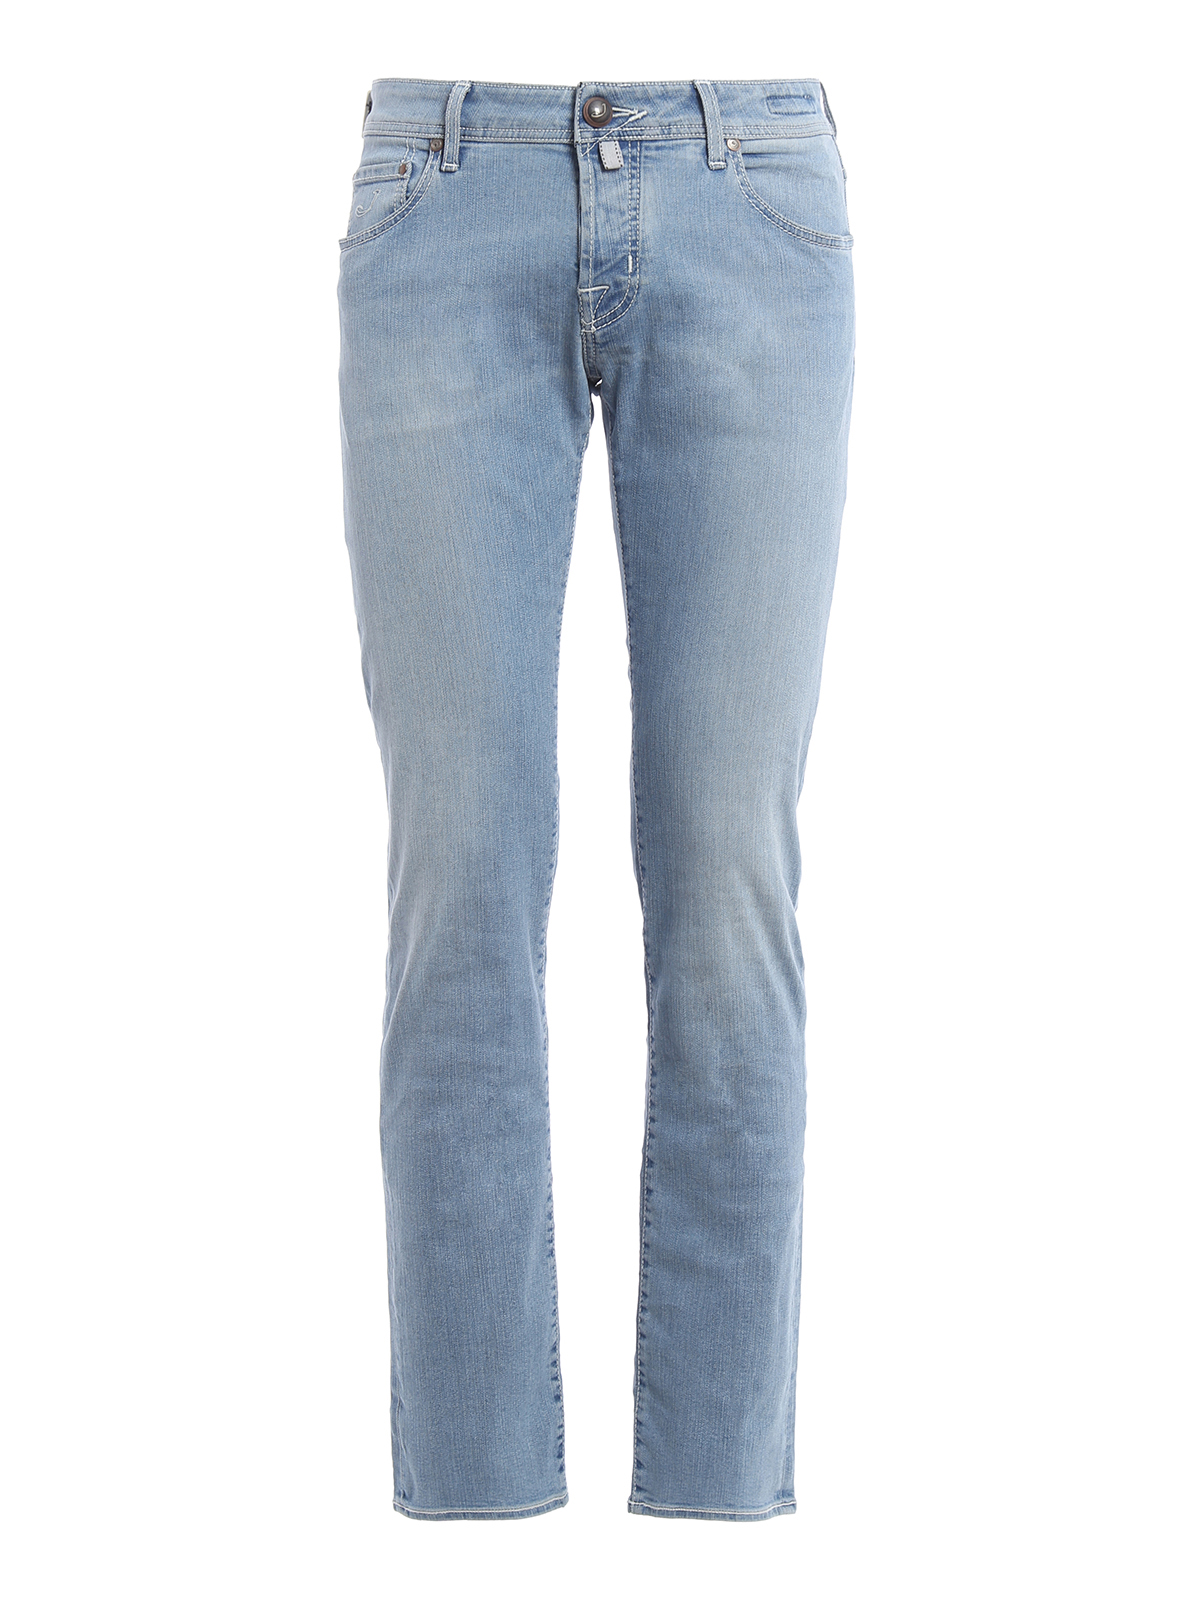 Tailored jeans by Jacob Cohen